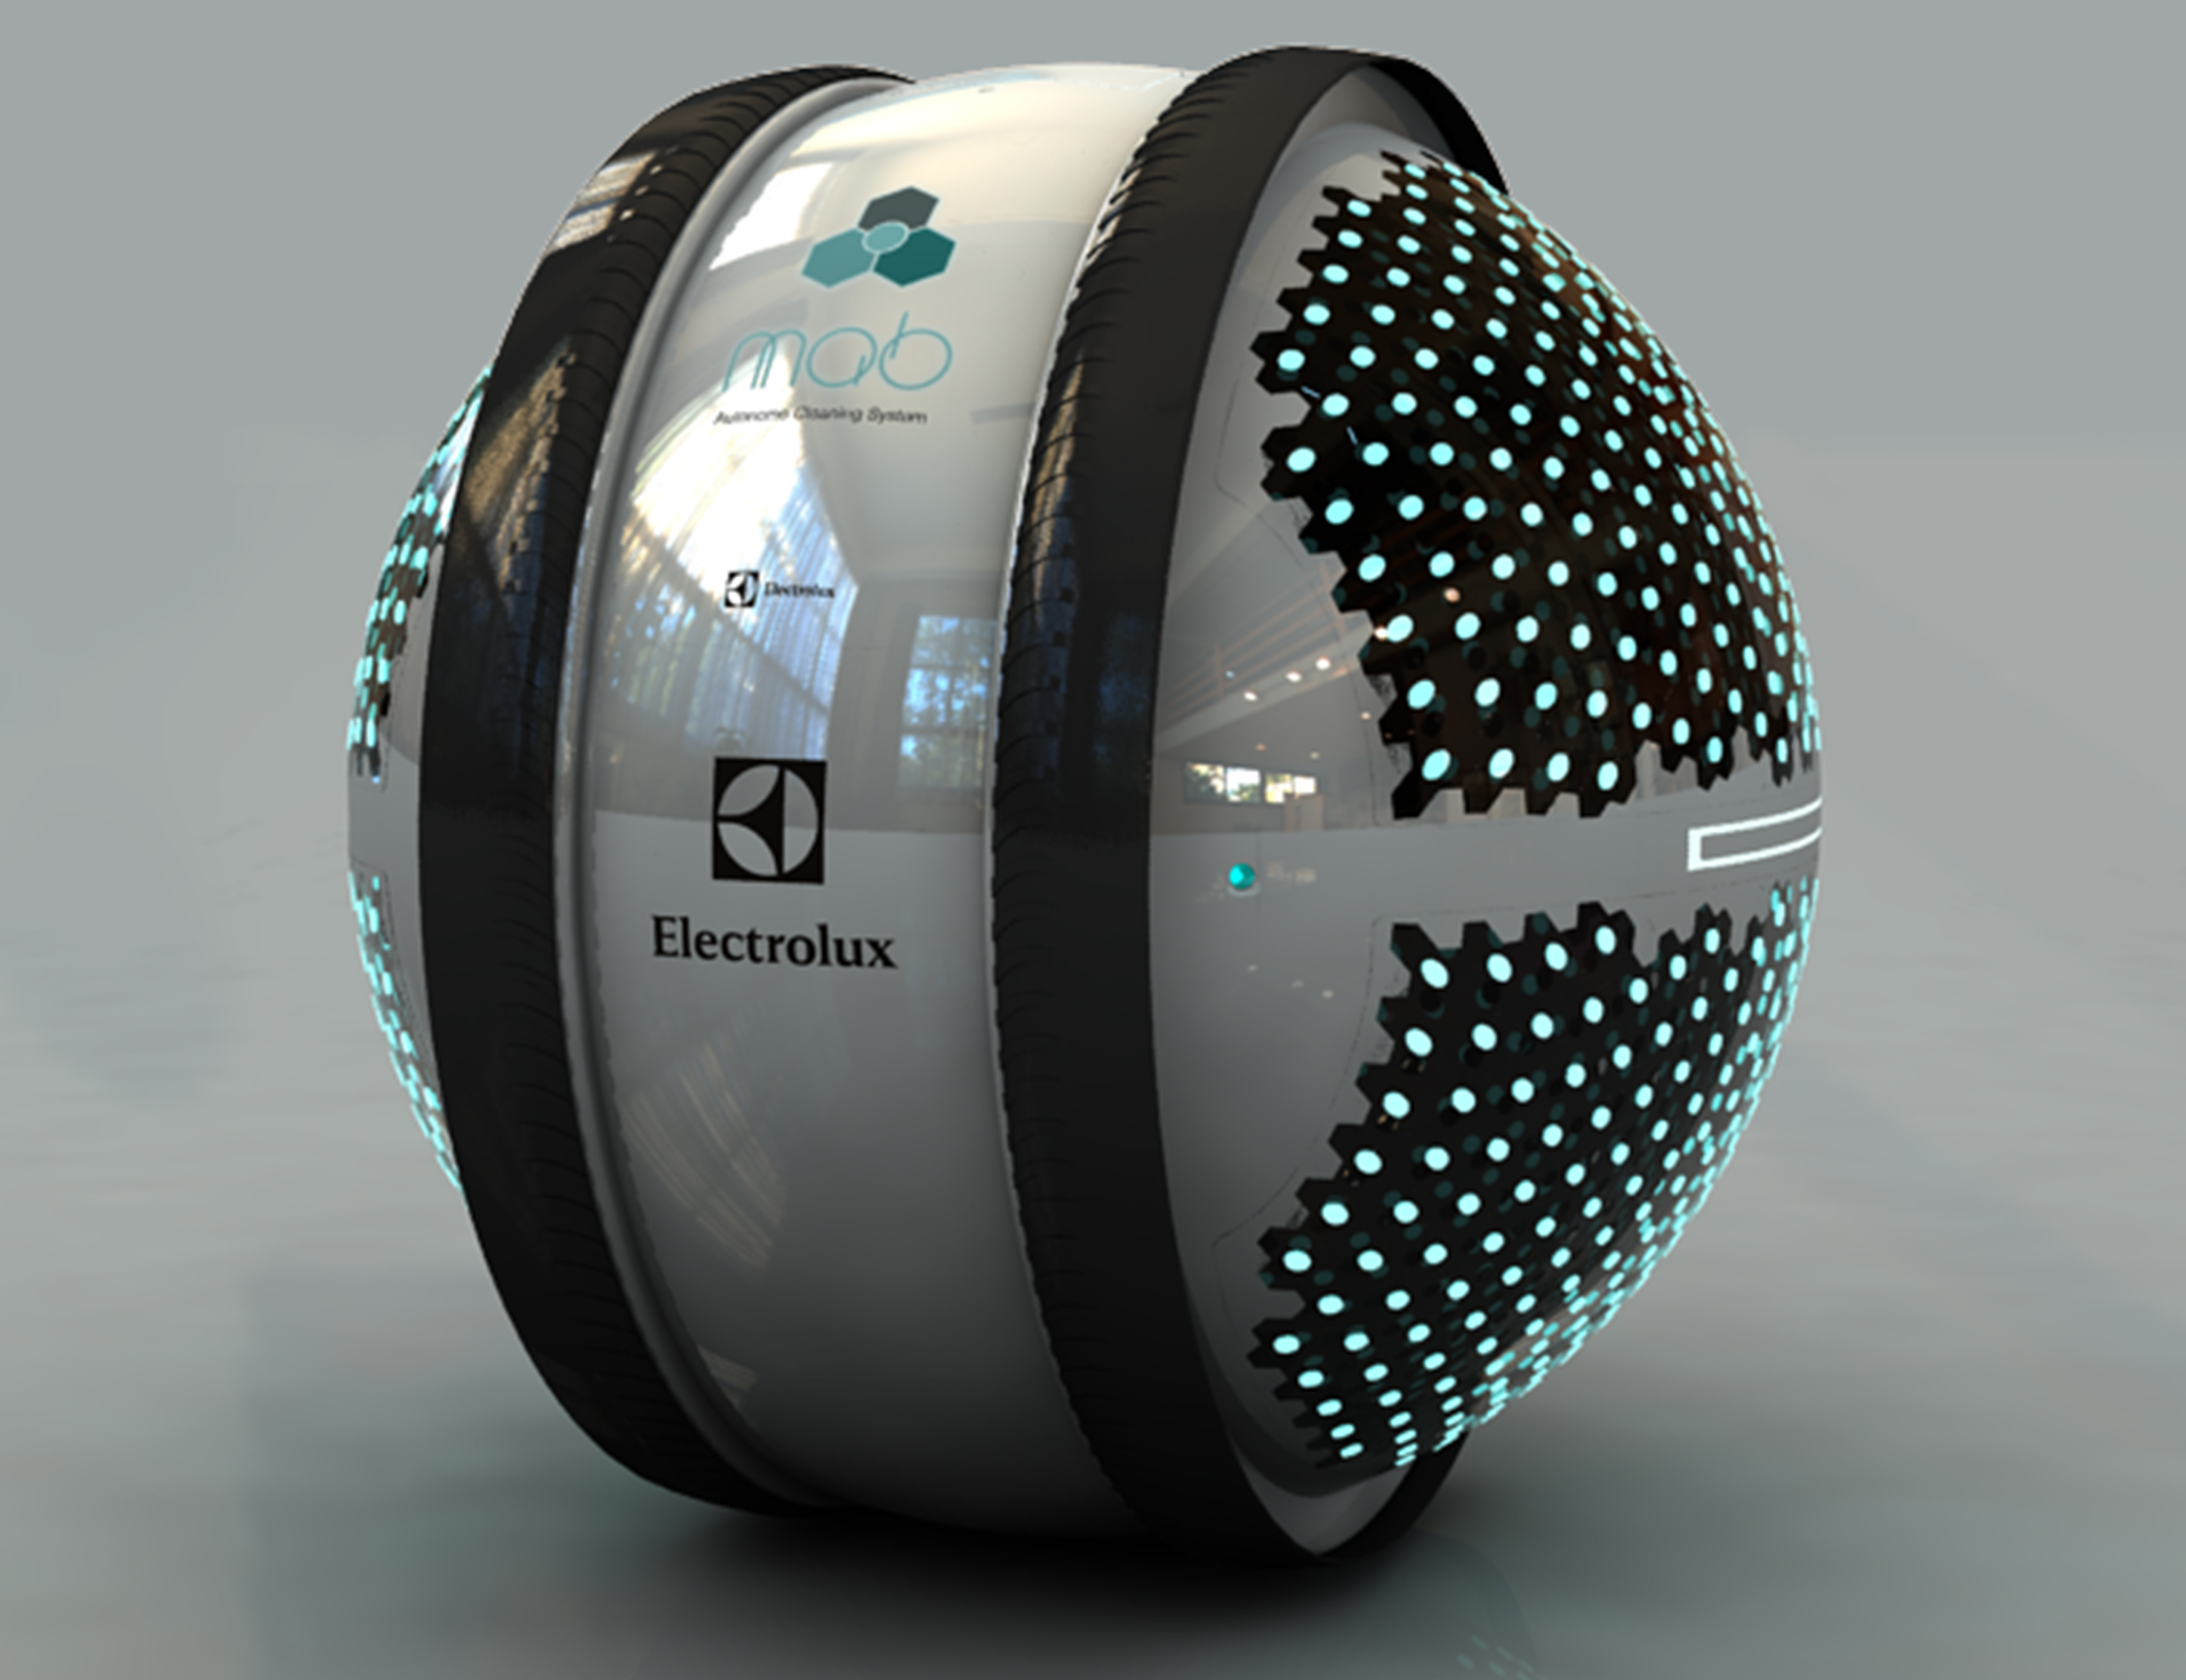 Best Robot Vacuum Of 2020 Flying mini robot cleaners win Electrolux Design Lab 2013 Contest